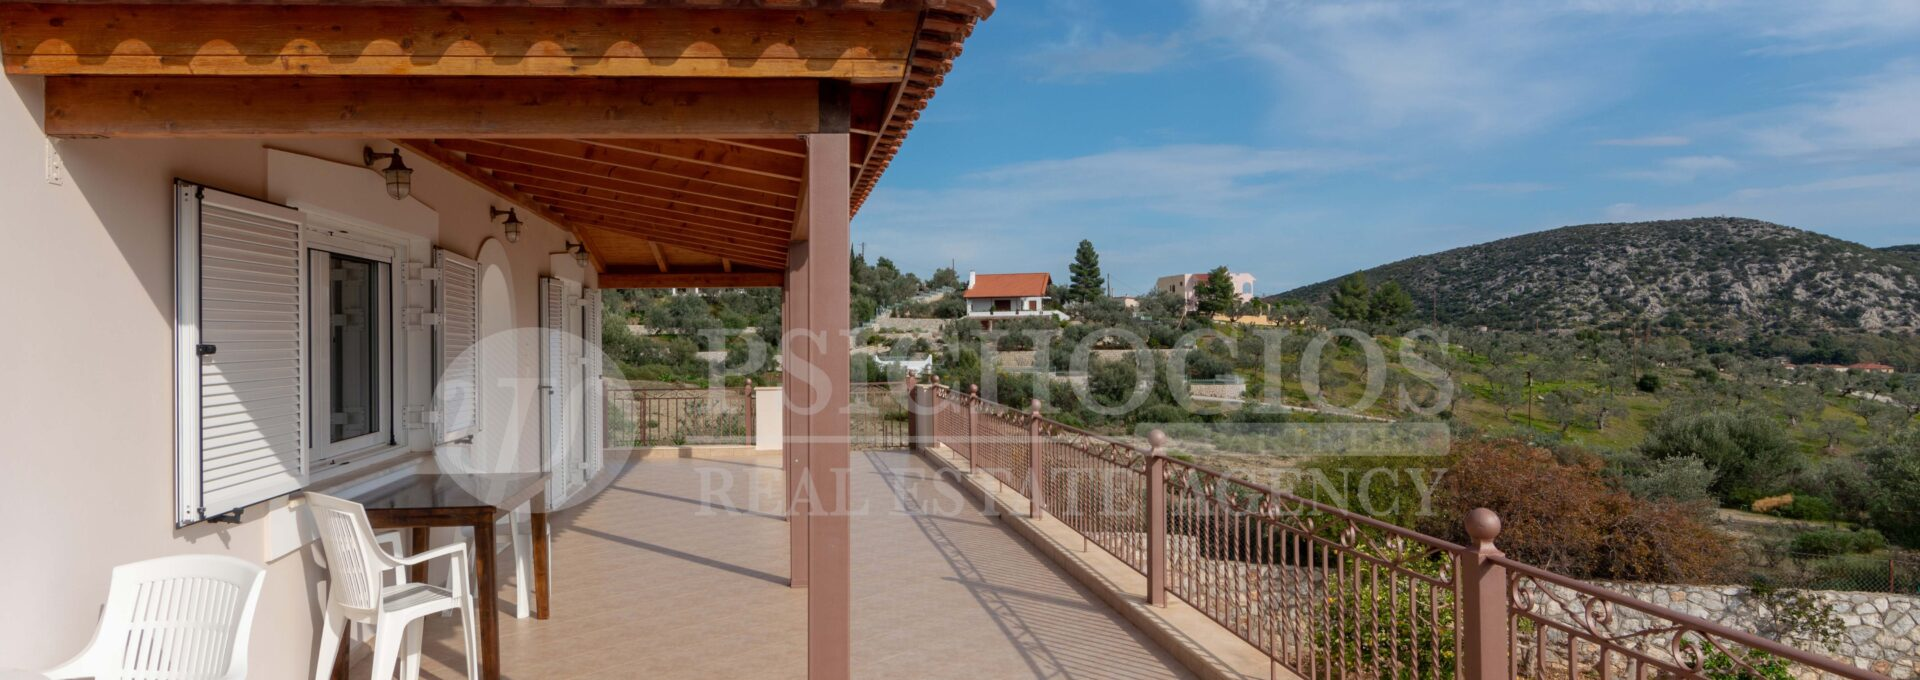 for_sale_house_107_square_meters_3_bedrooms_sea_view_ermioni_greece 1 1 (34)